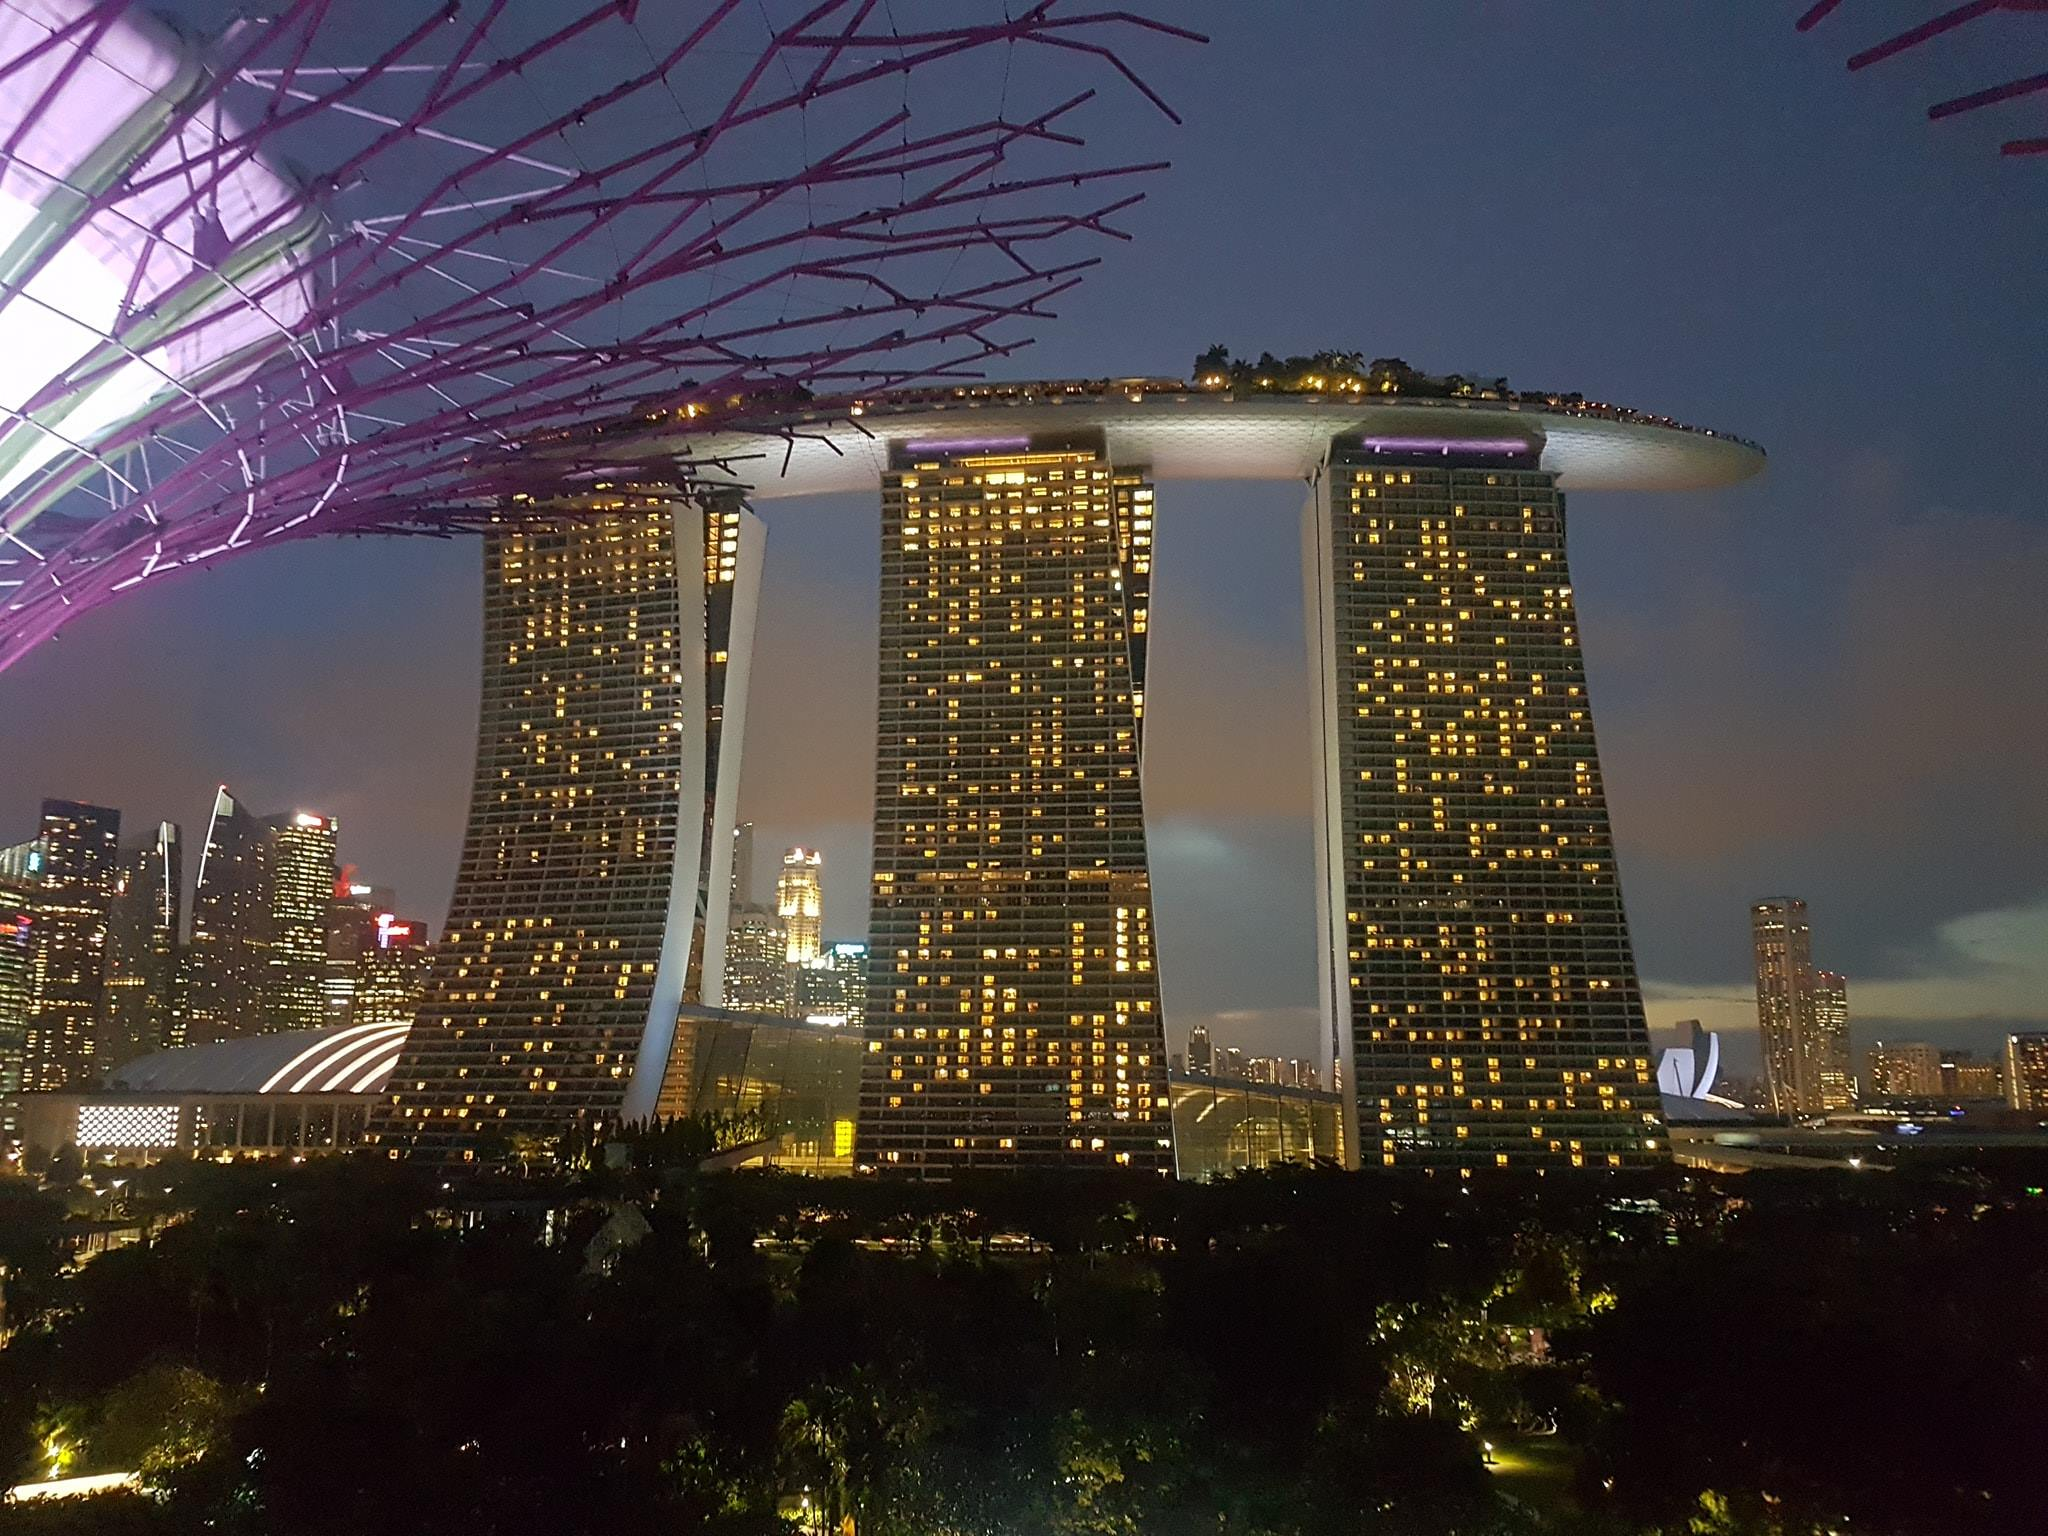 Marina Bay Sands hotel in Singapore - an incredible view at night!